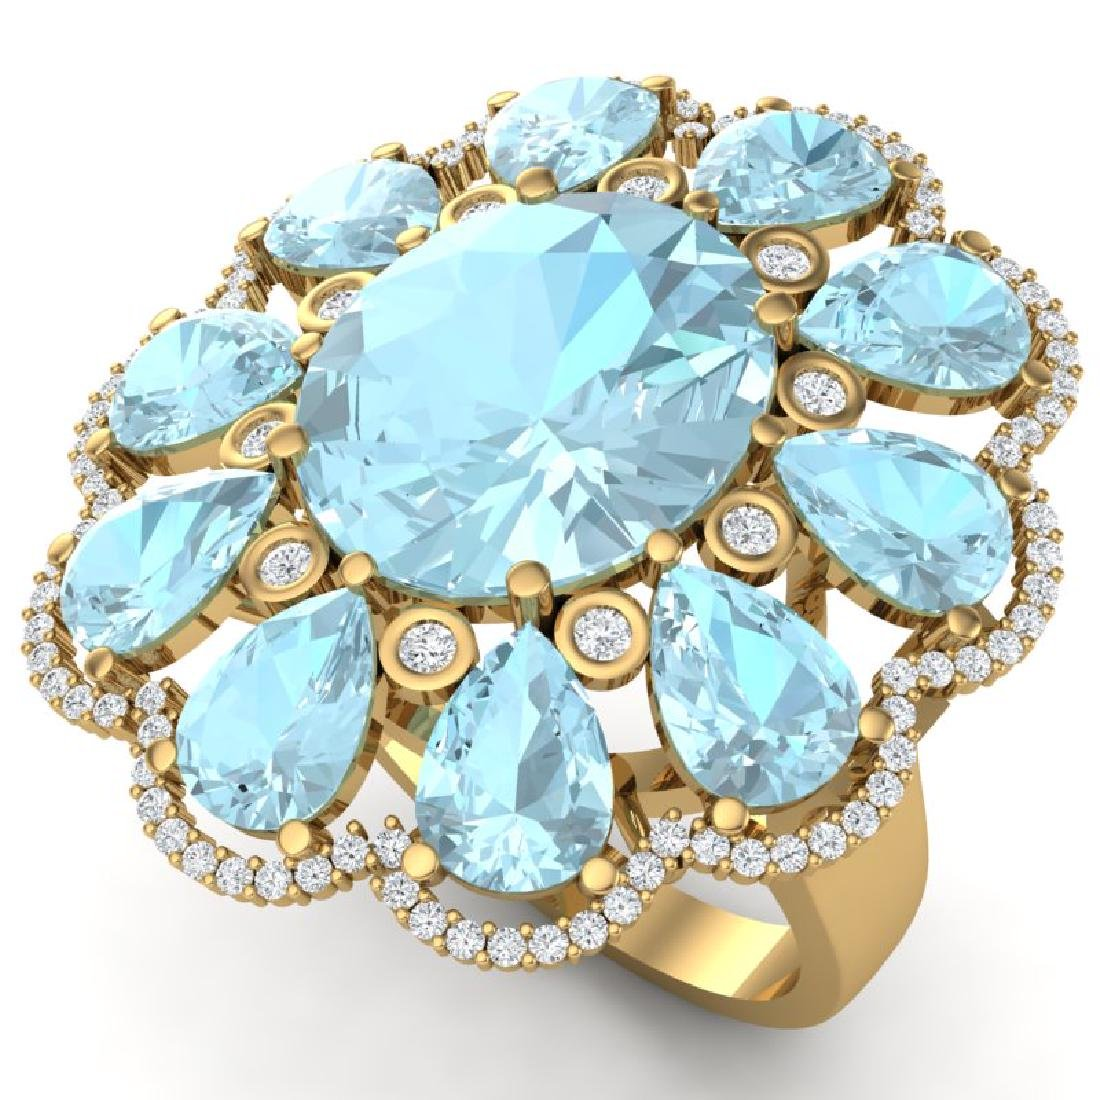 20.54 CTW Royalty Sky Topaz & VS Diamond Ring 18K